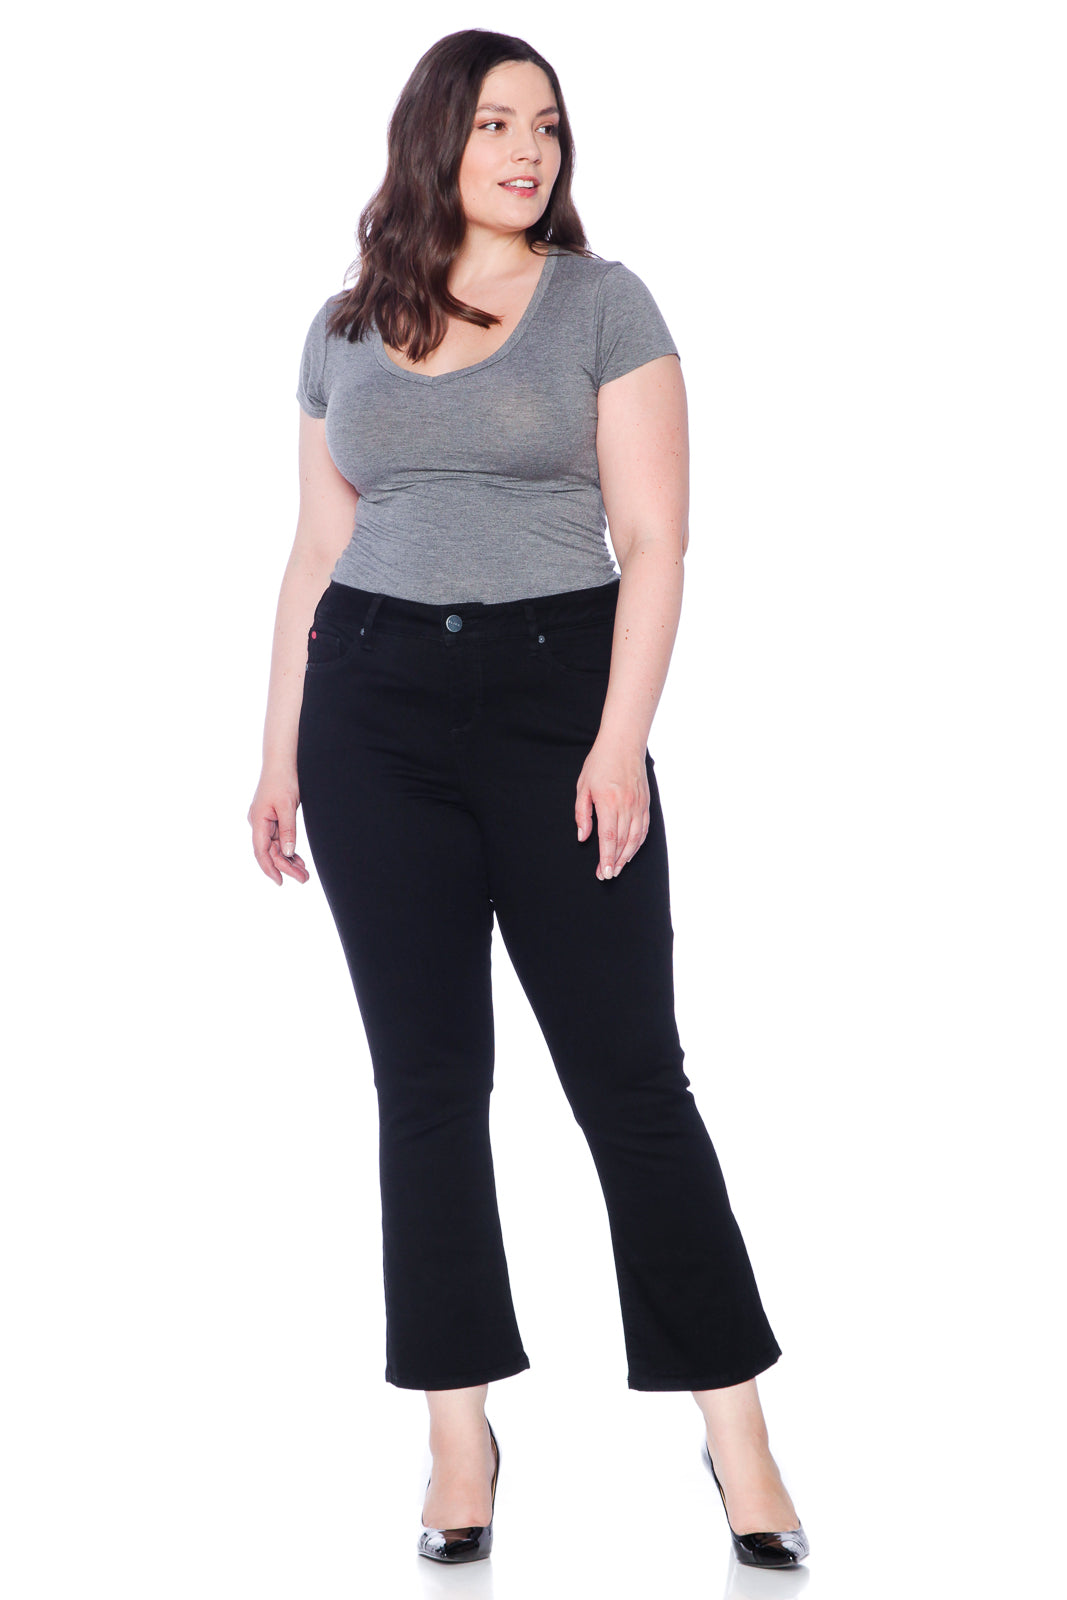 The High Waisted Flare - SOLID BLACK